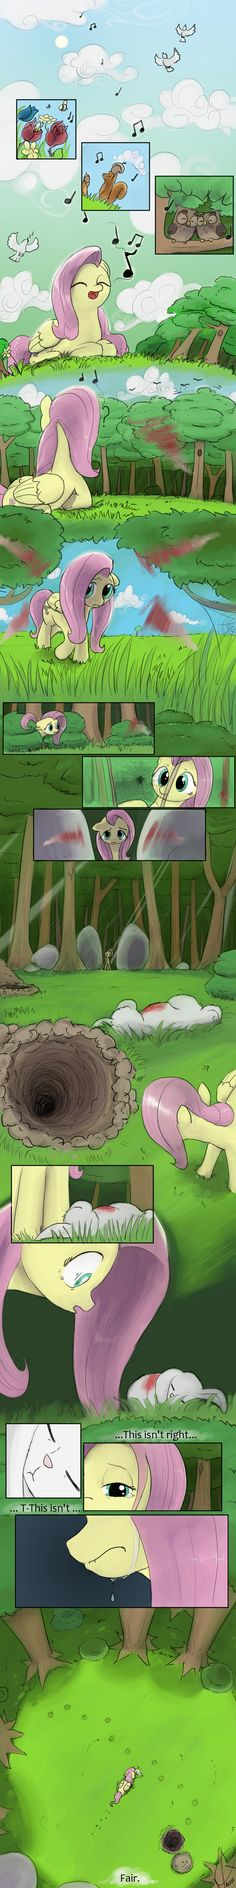 Fan made: origin story of Fluttershy meeting Angel.